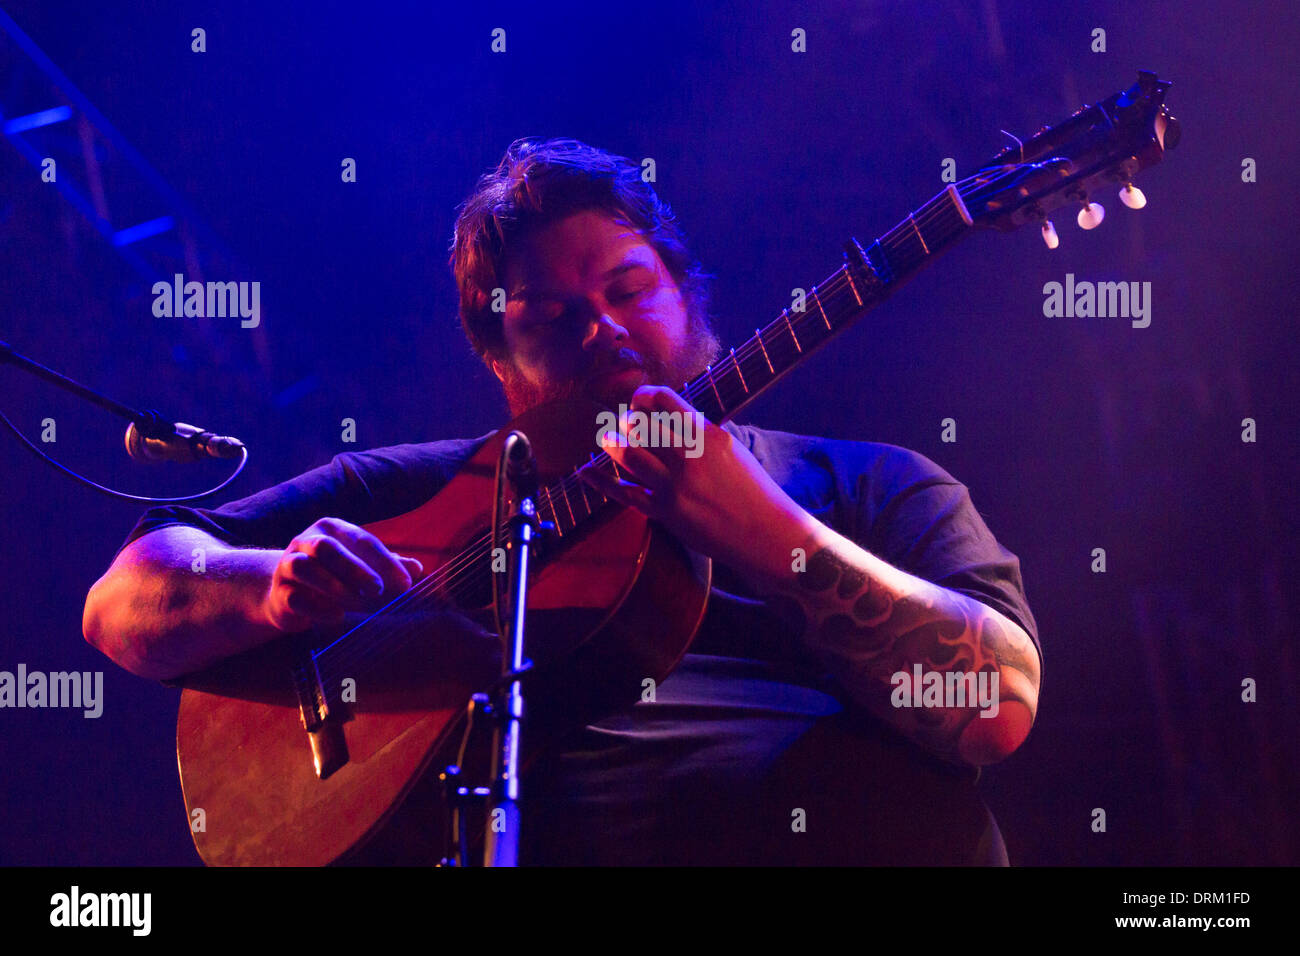 Glasgow, Scotland, UK. 28th January 2014. RM Hubbert, Scottish guitarist and singer, supported Mogwai Concert Hall Glasgow, Celtic Connections 2014. Member Scottish post rock band El Hombre Trajeado, member of the Glaswegian DIY music scene since 1991. Credit:  Pauline Keightley/Alamy Live News - Stock Image